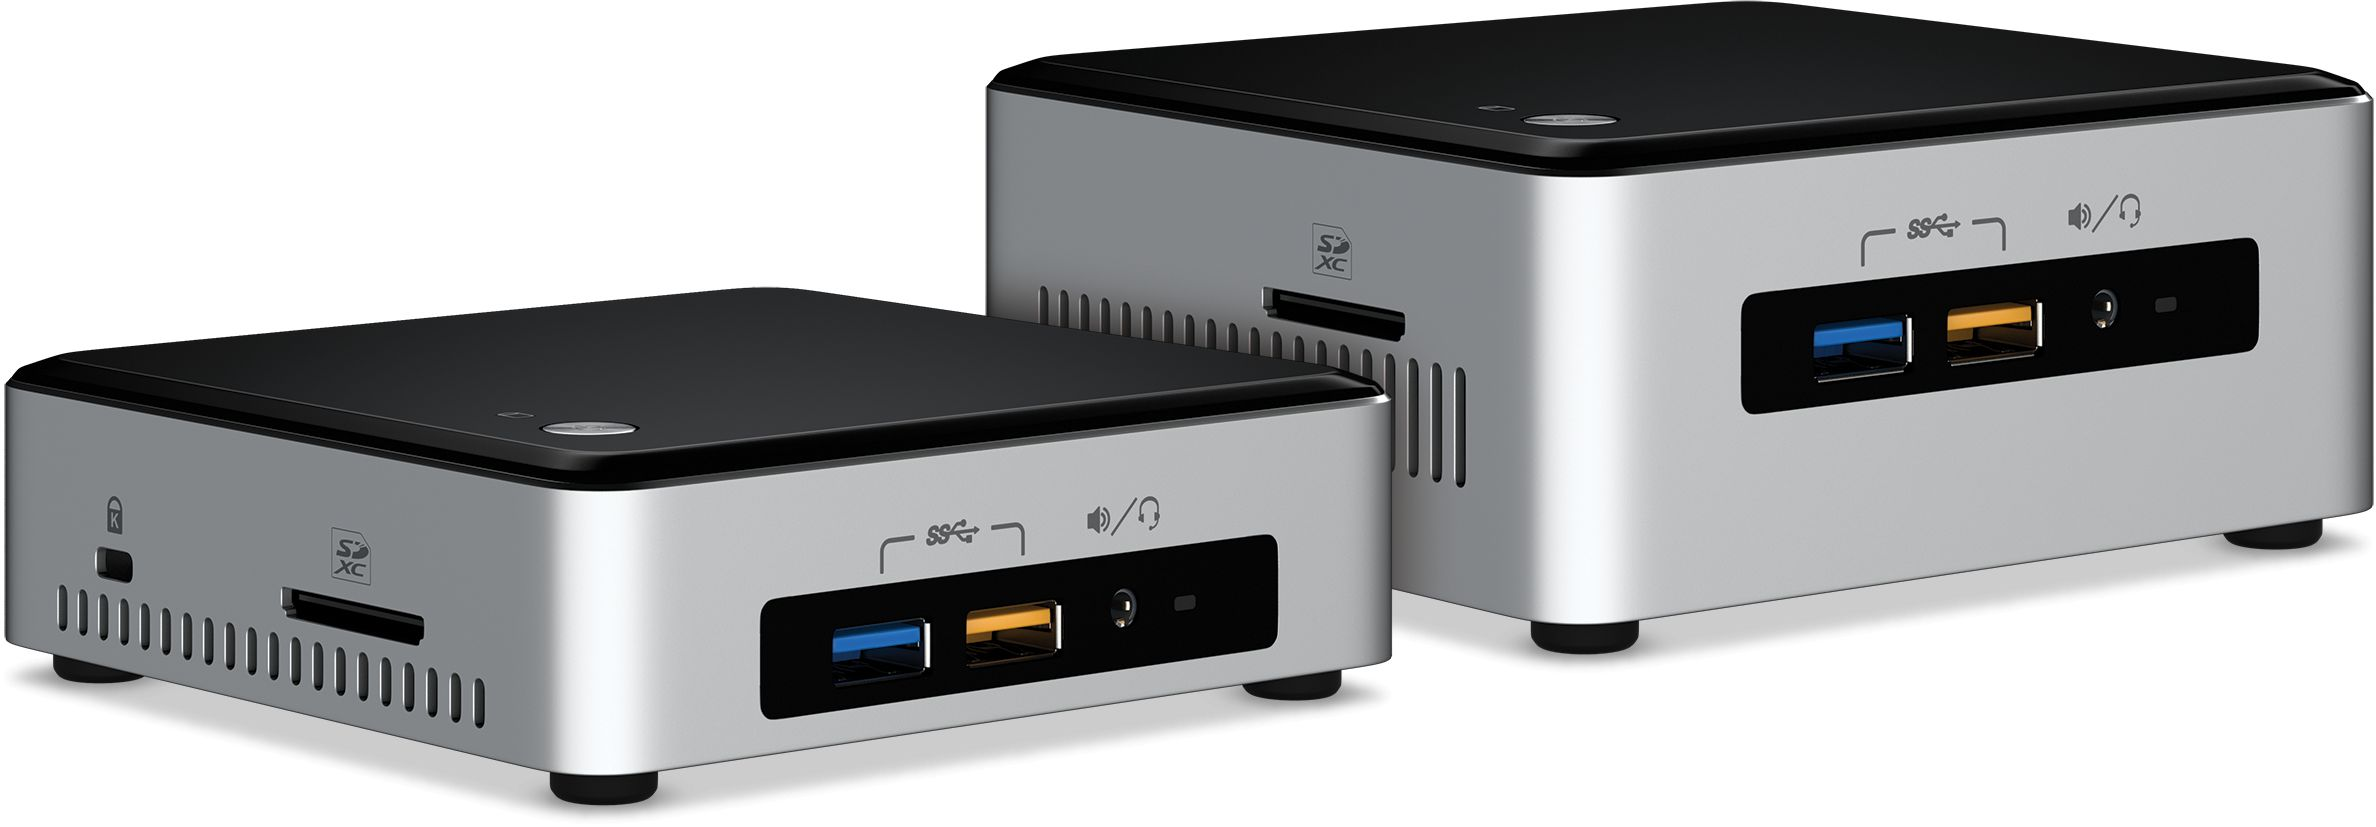 Intel NUC 6th Generation Next Unit of Computing kits